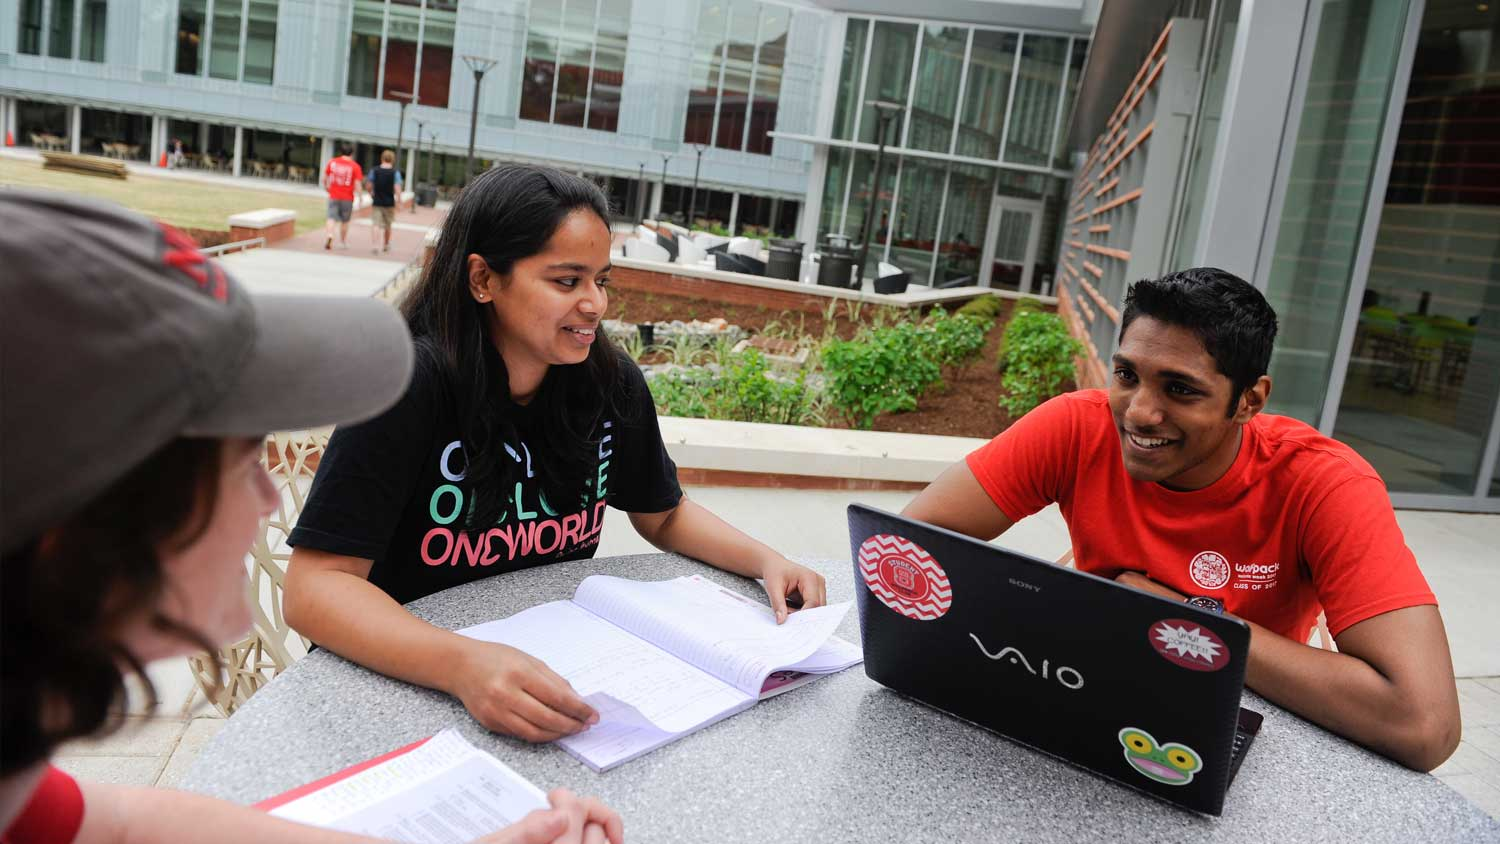 Students on Campus - Student Resources -Parks Recreation and Tourism Management NC State